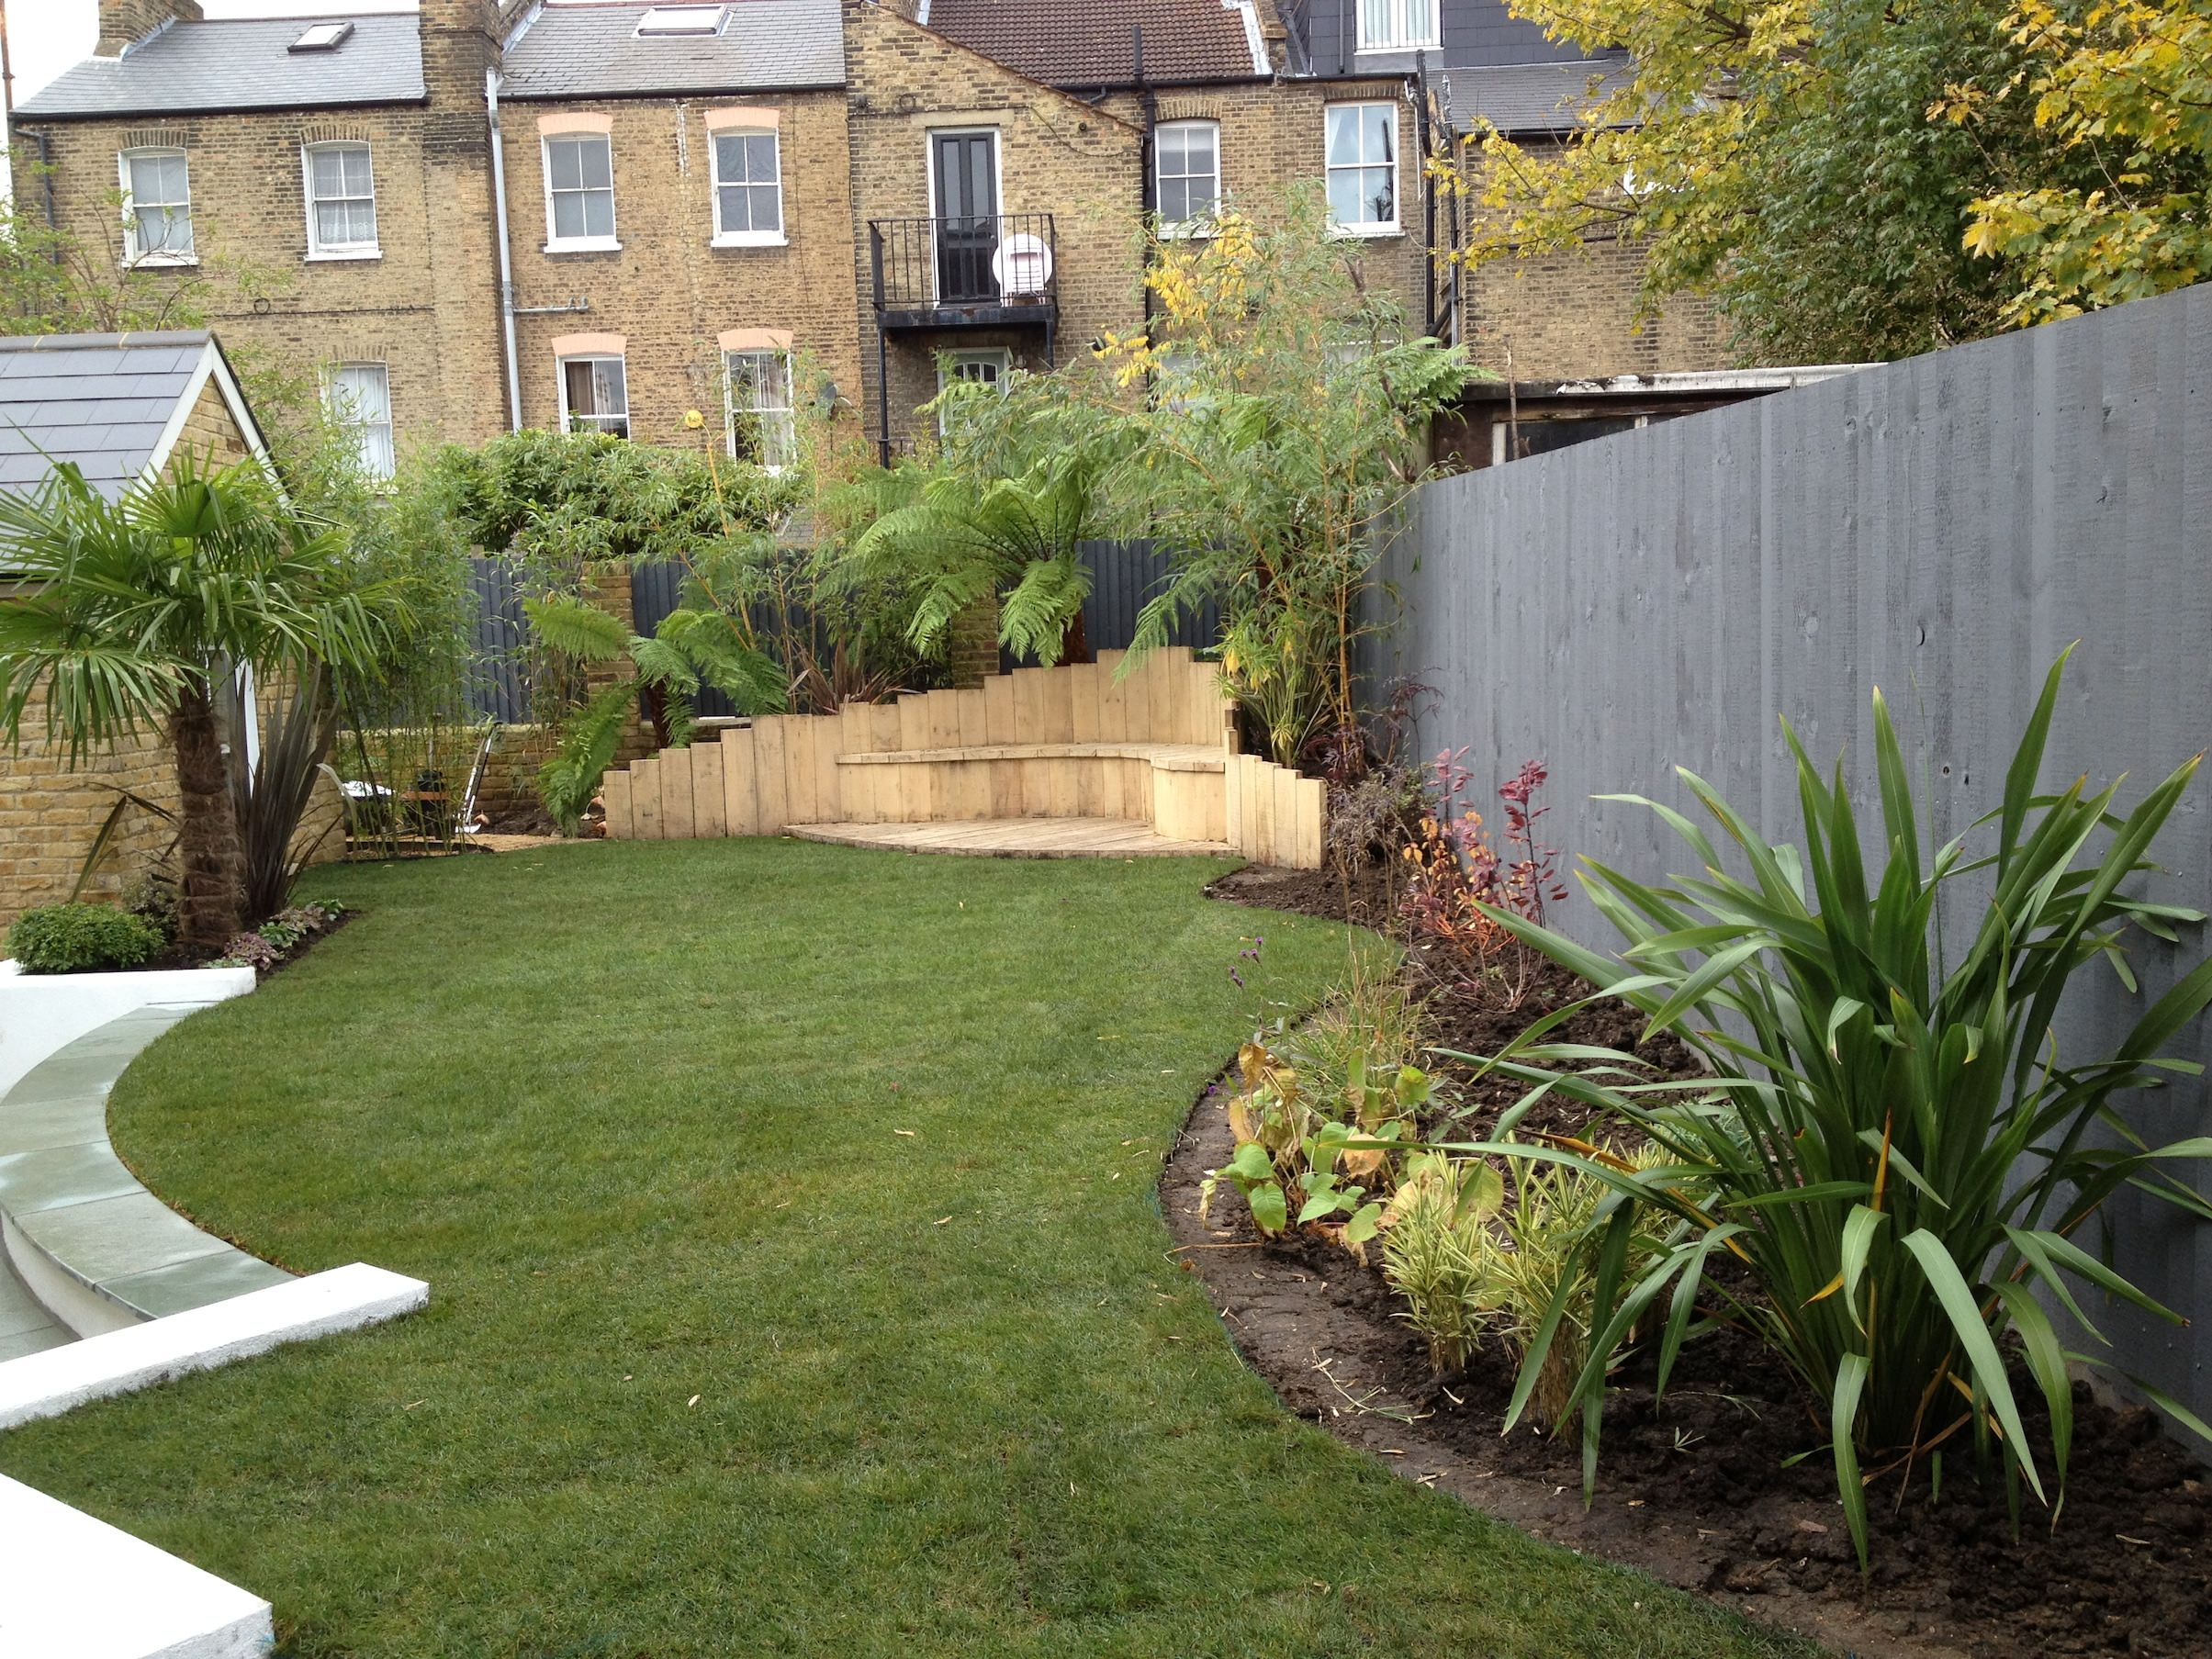 Low maintenance garden designs garden club london for Garden design ideas photos